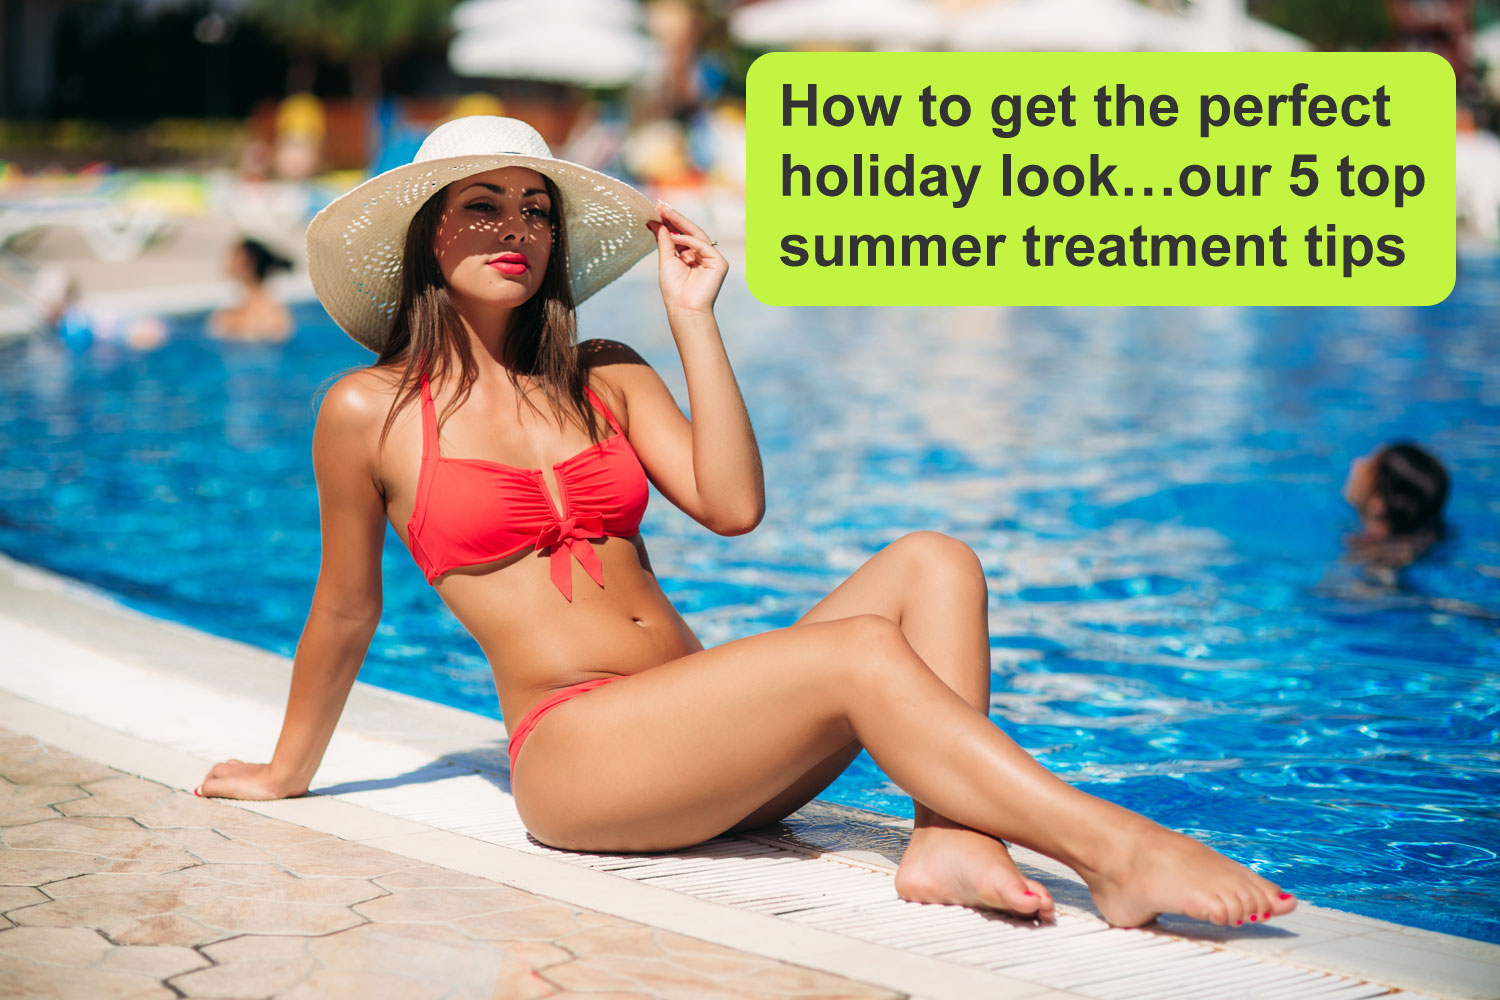 How to get the perfect holiday look…our 5 top summer treatment tips